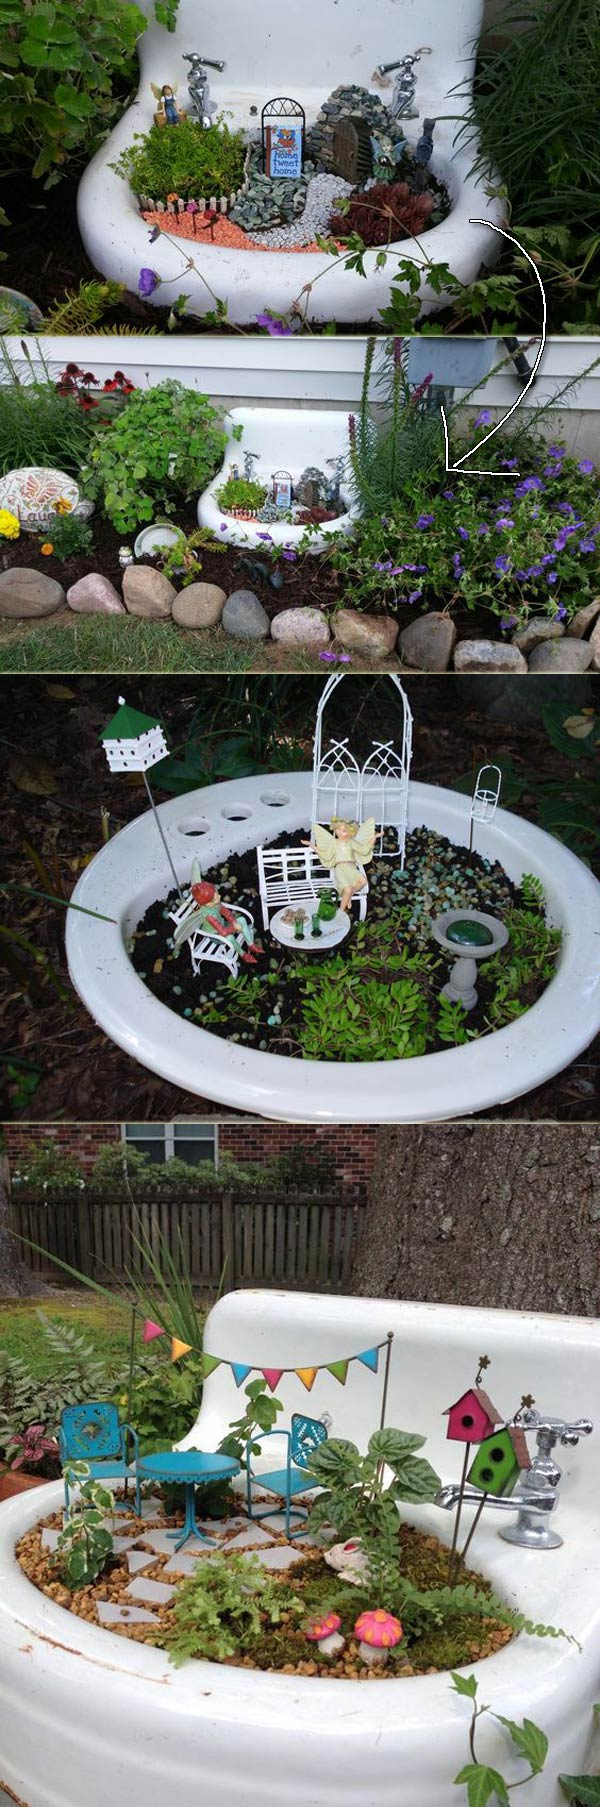 17 stunning fairy gardens created by recycled things for Fairytale inspired home decor